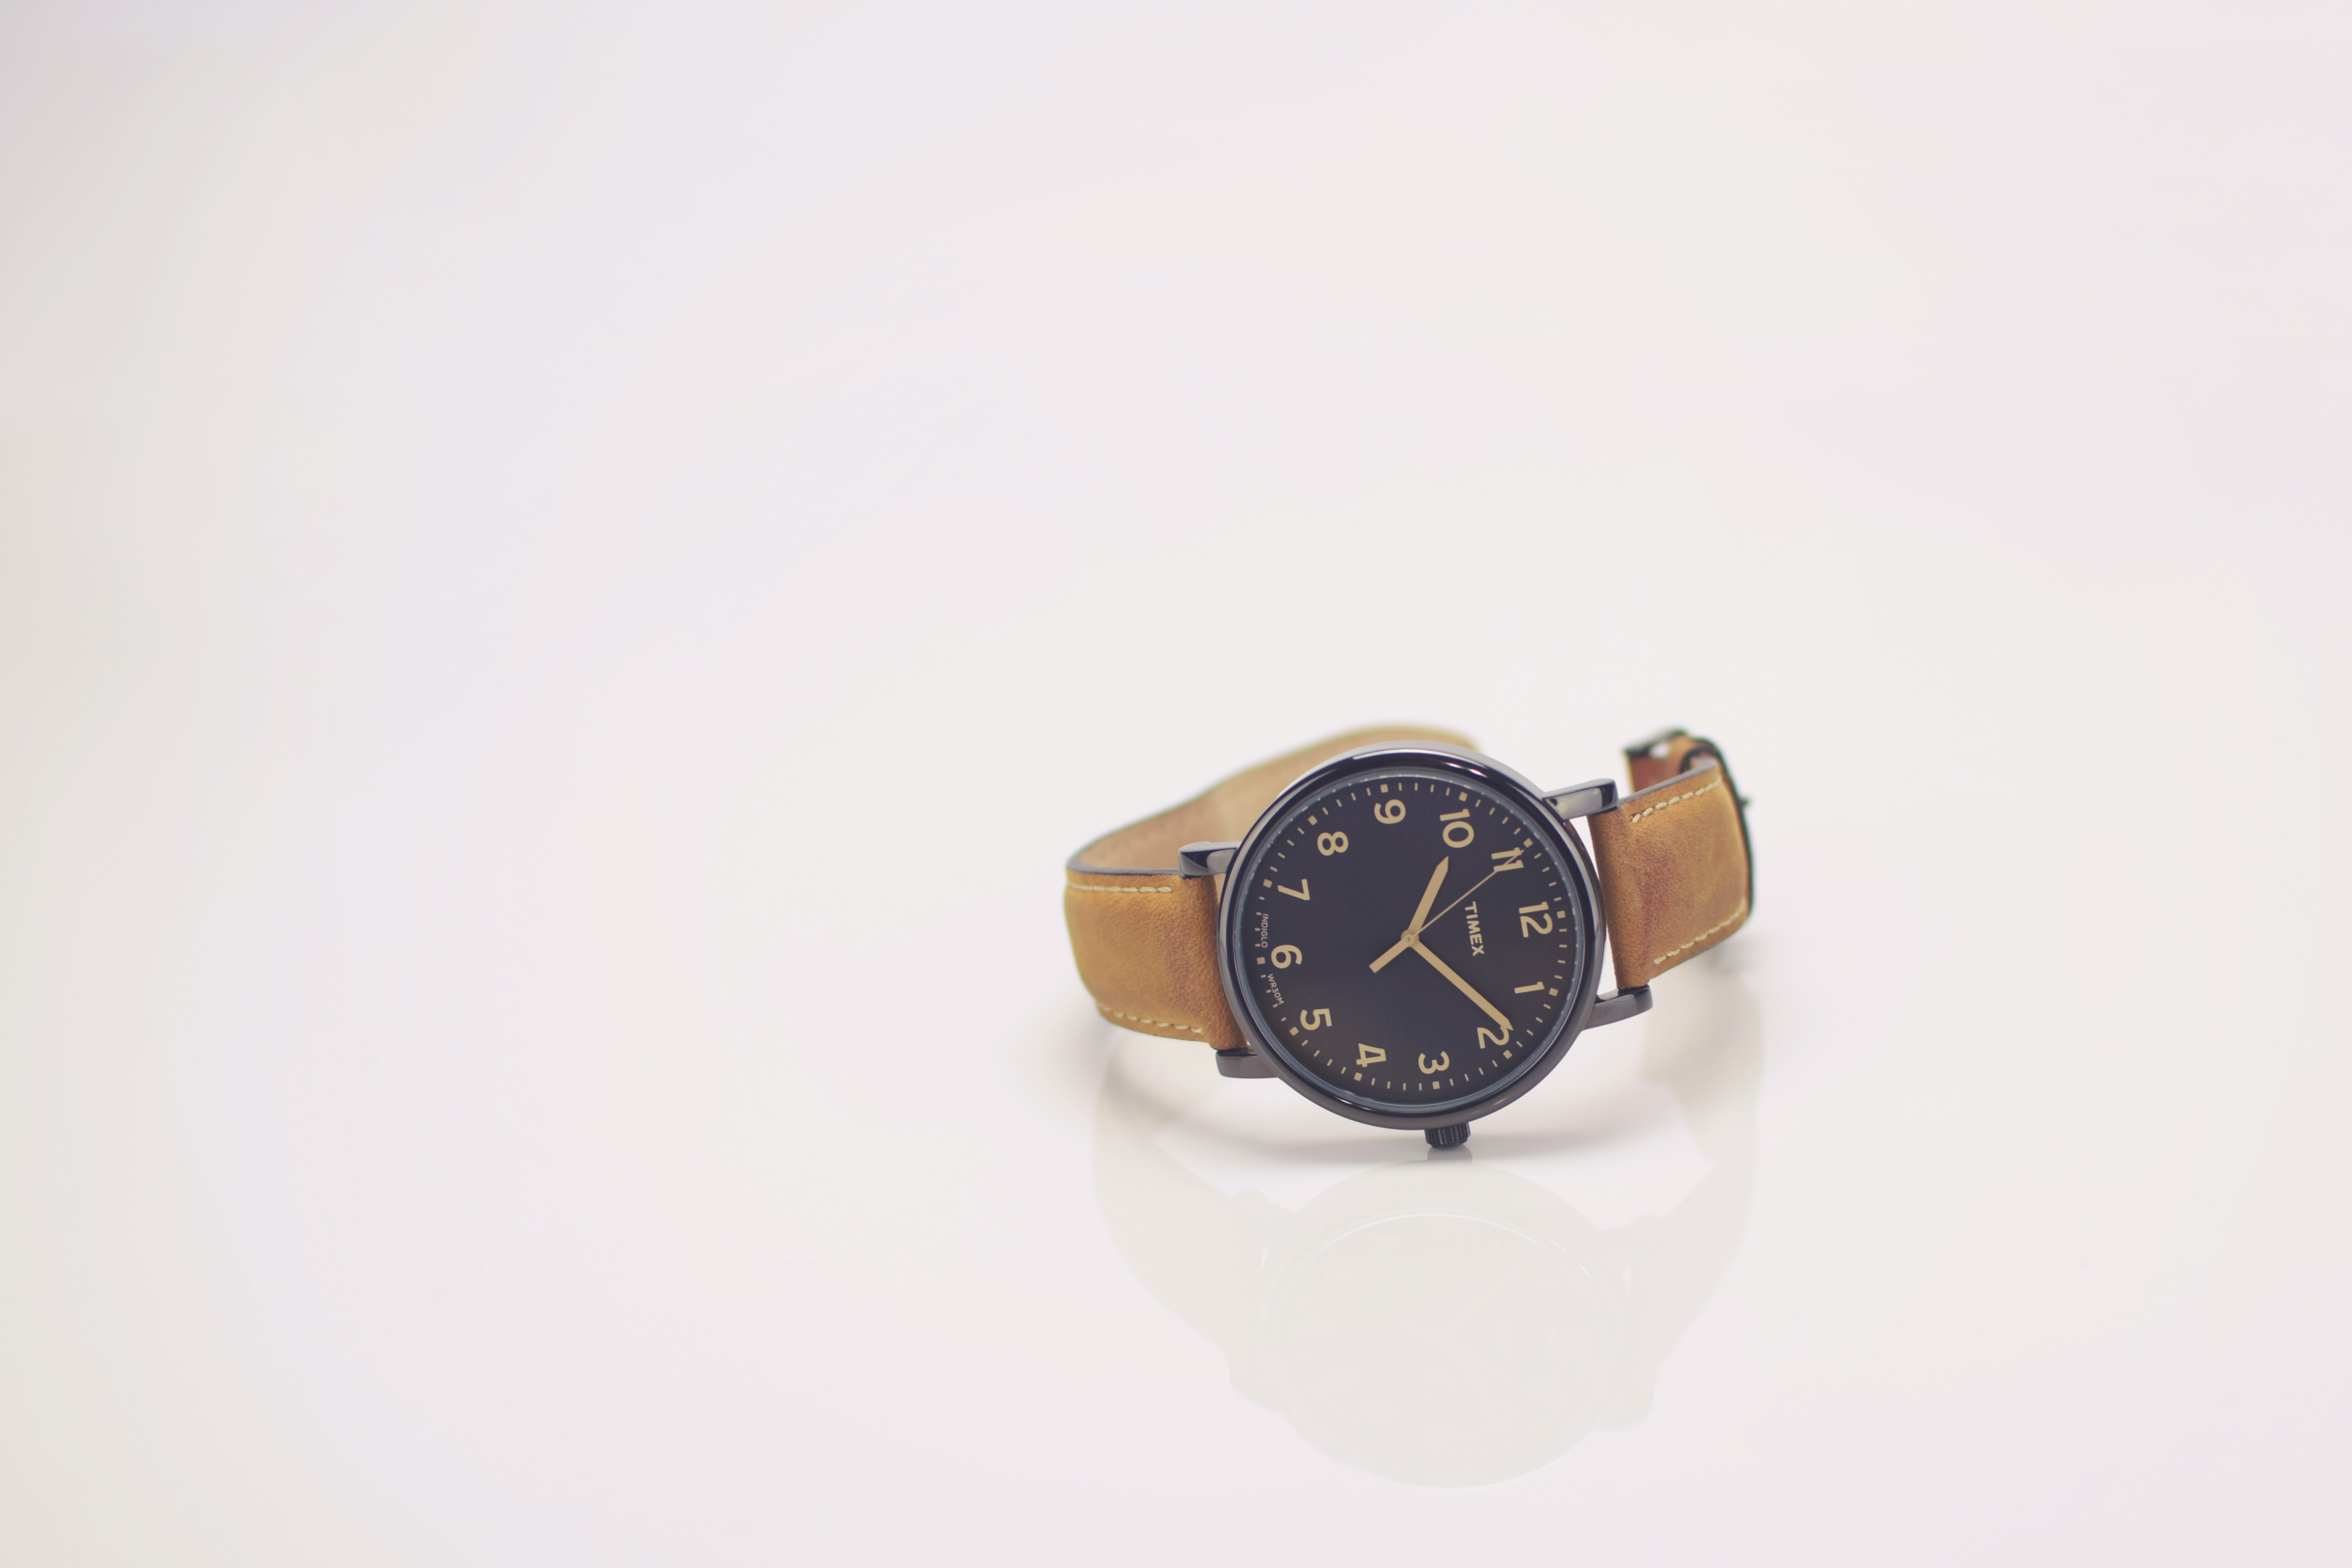 round black analog watch with brown leather band reading at 10:10